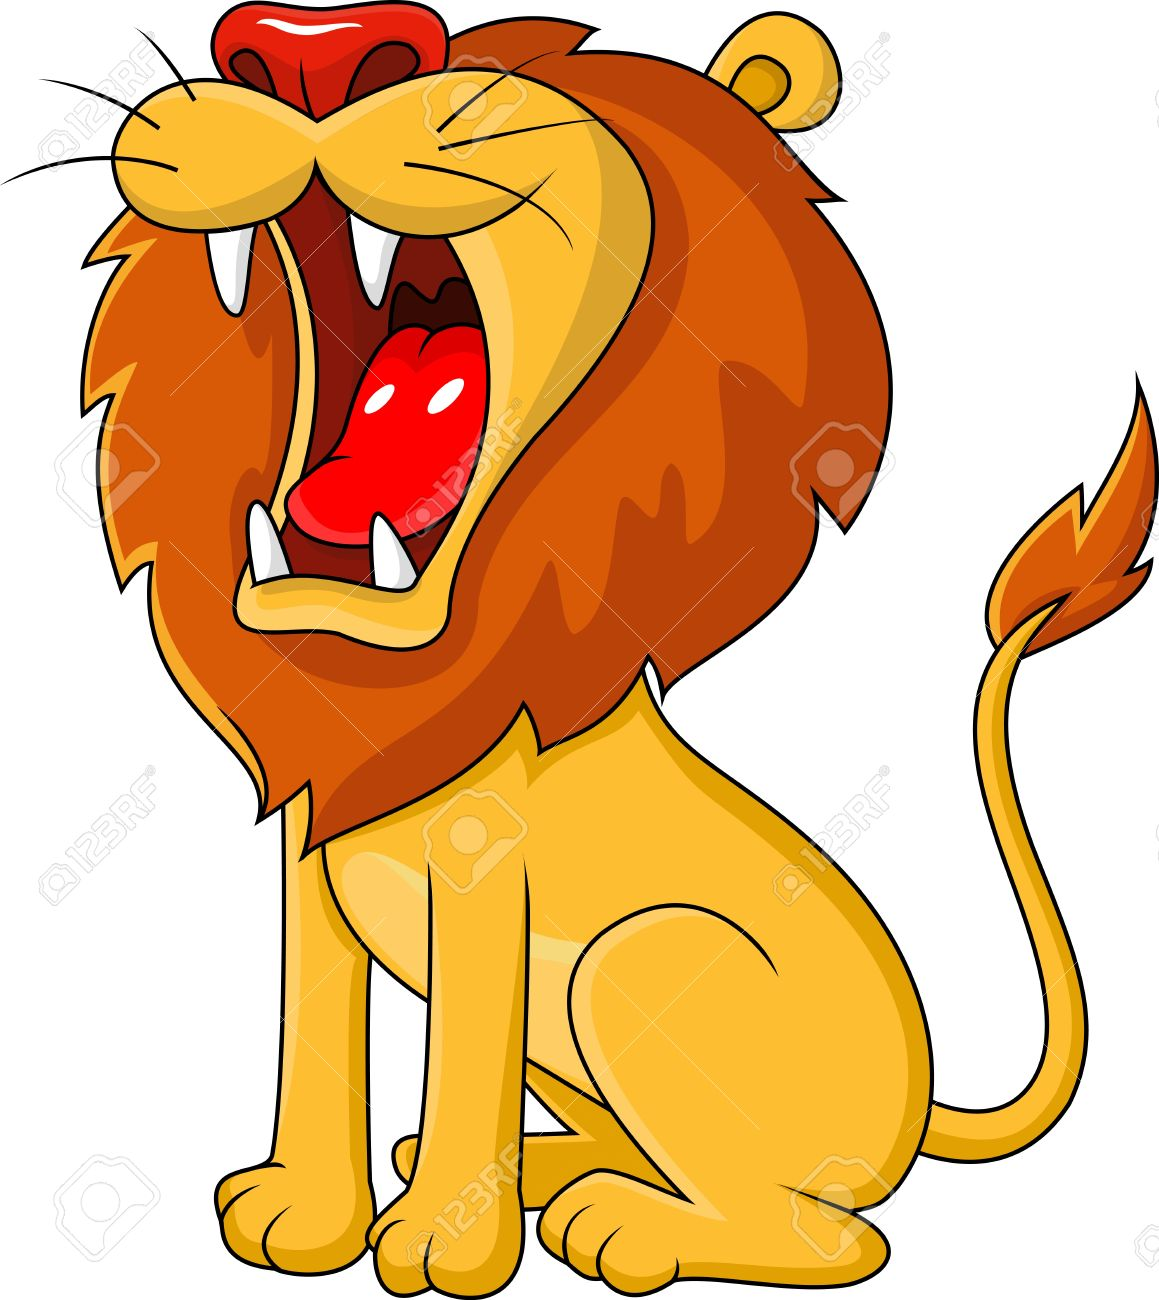 3,047 Roar Stock Vector Illustration And Royalty Free Roar Clipart.